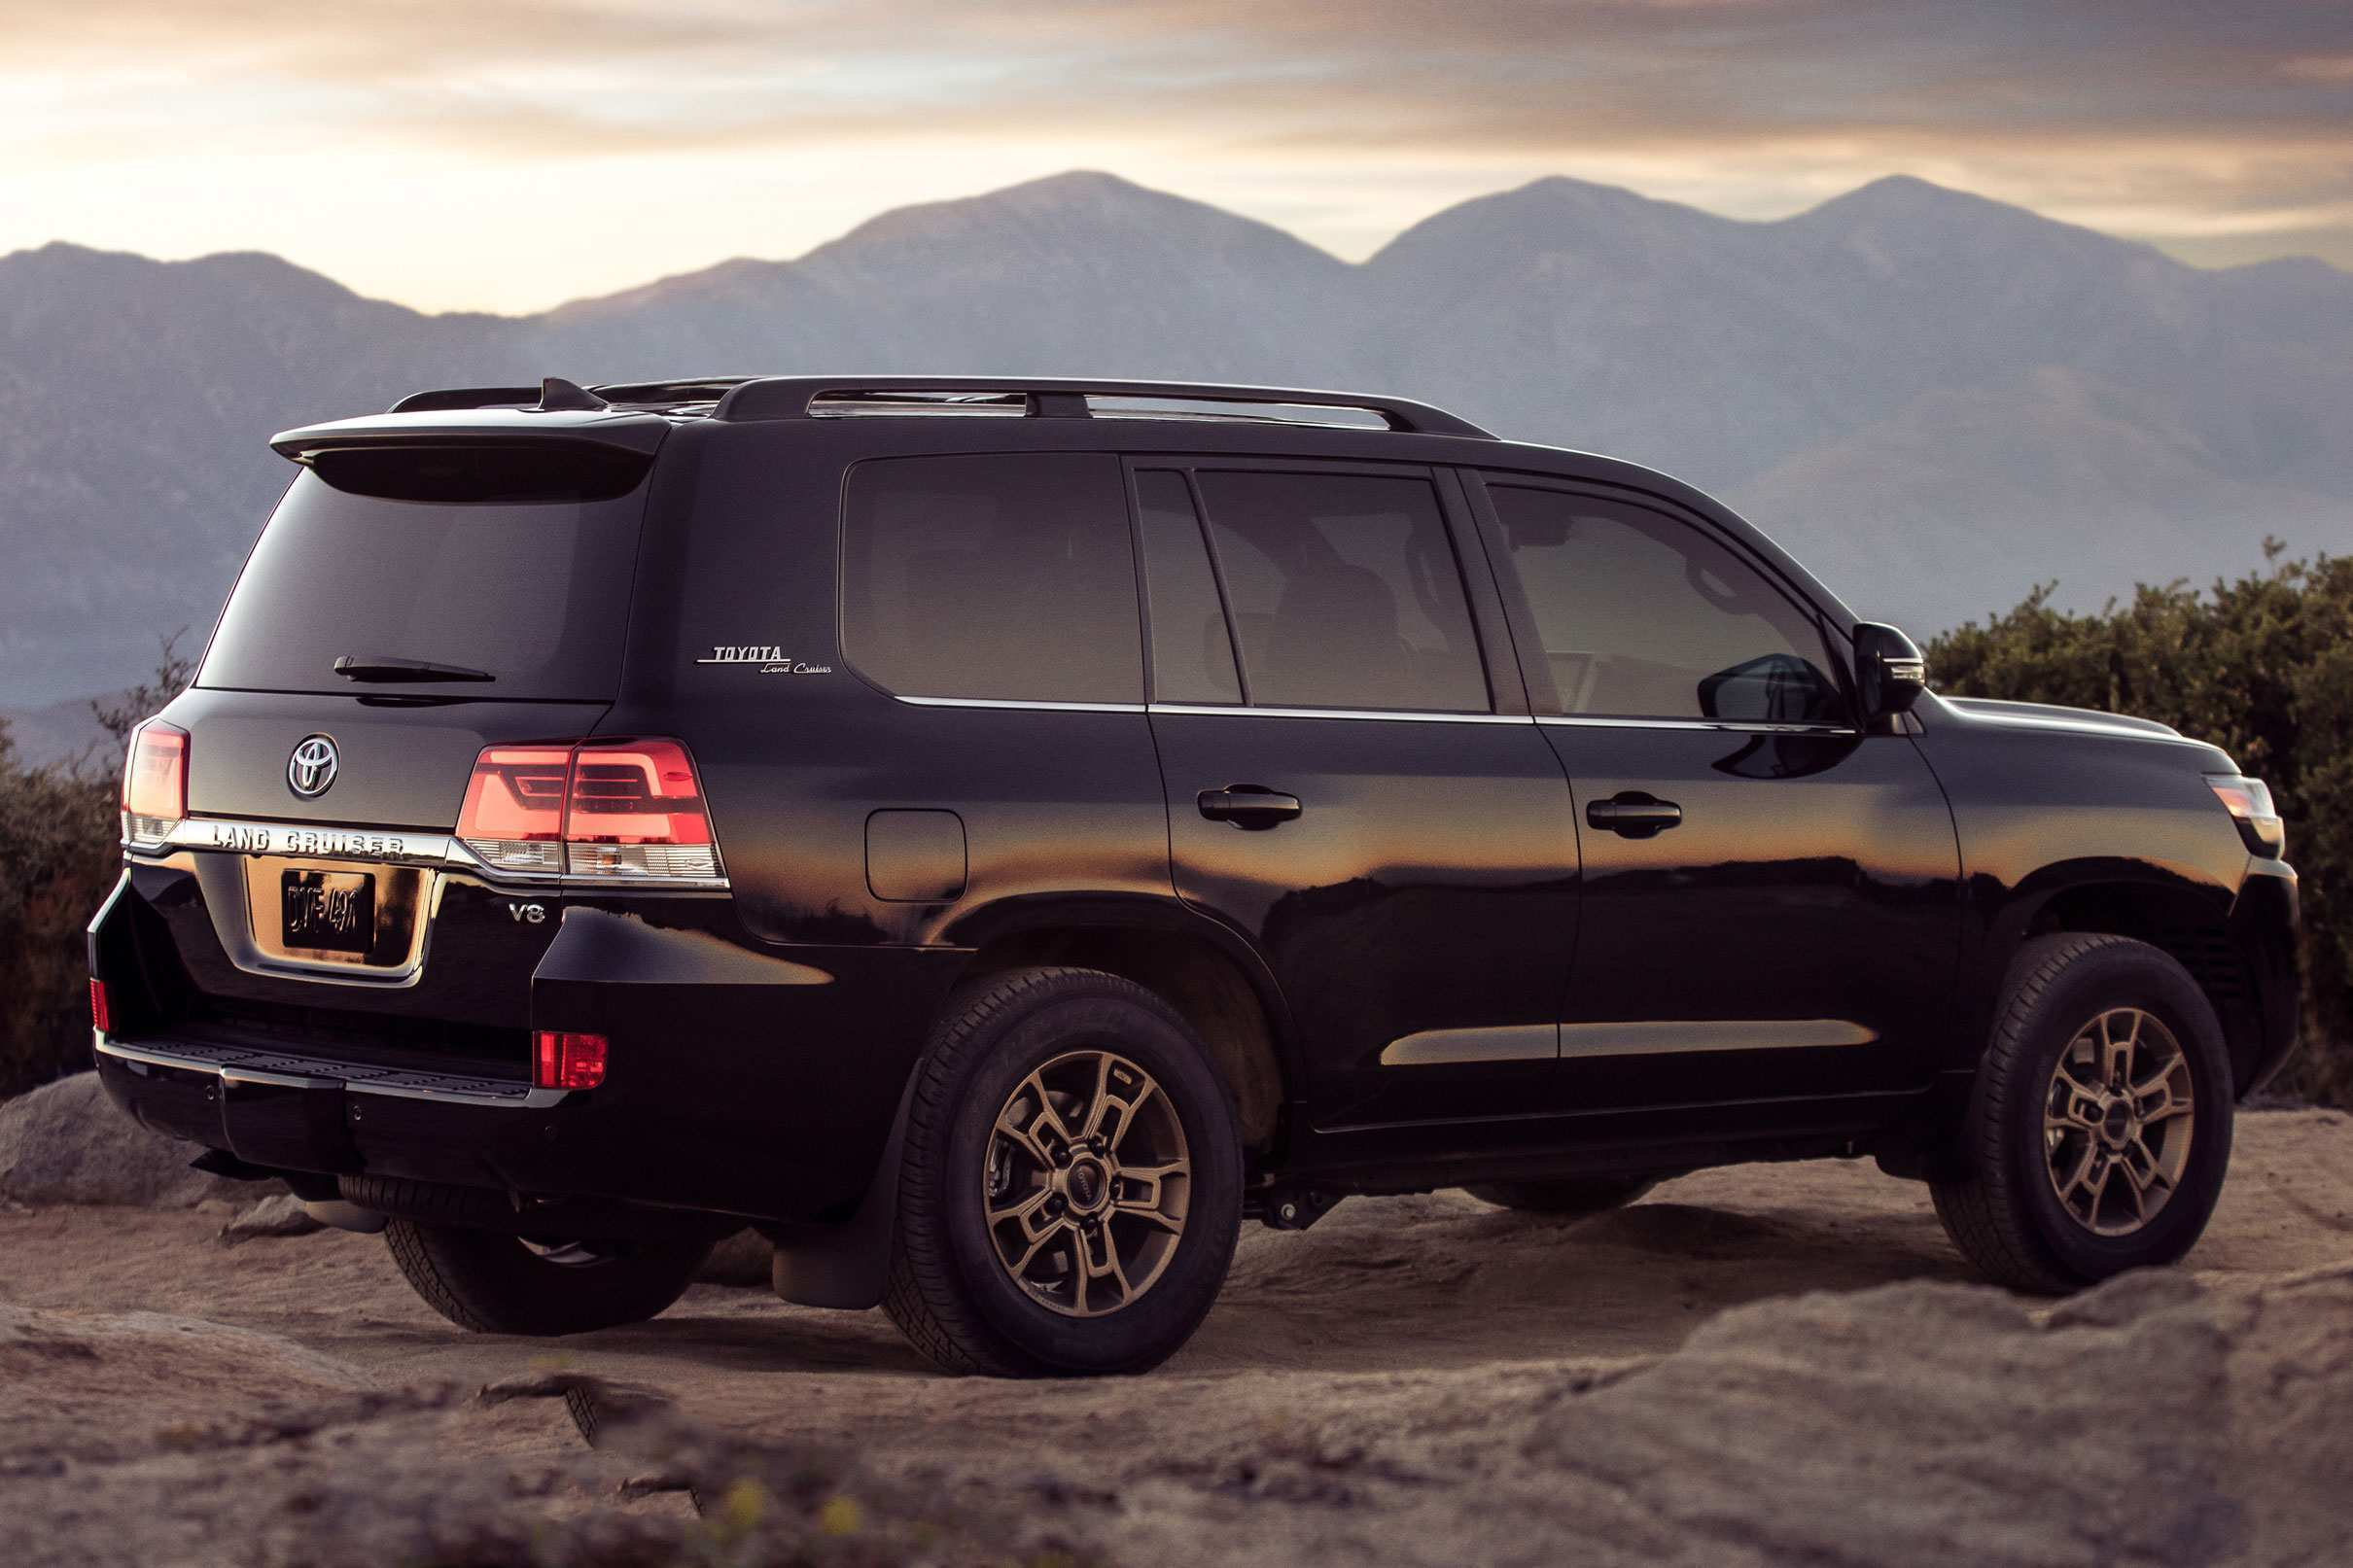 91 All New 2020 Toyota Land Cruiser 200 Style